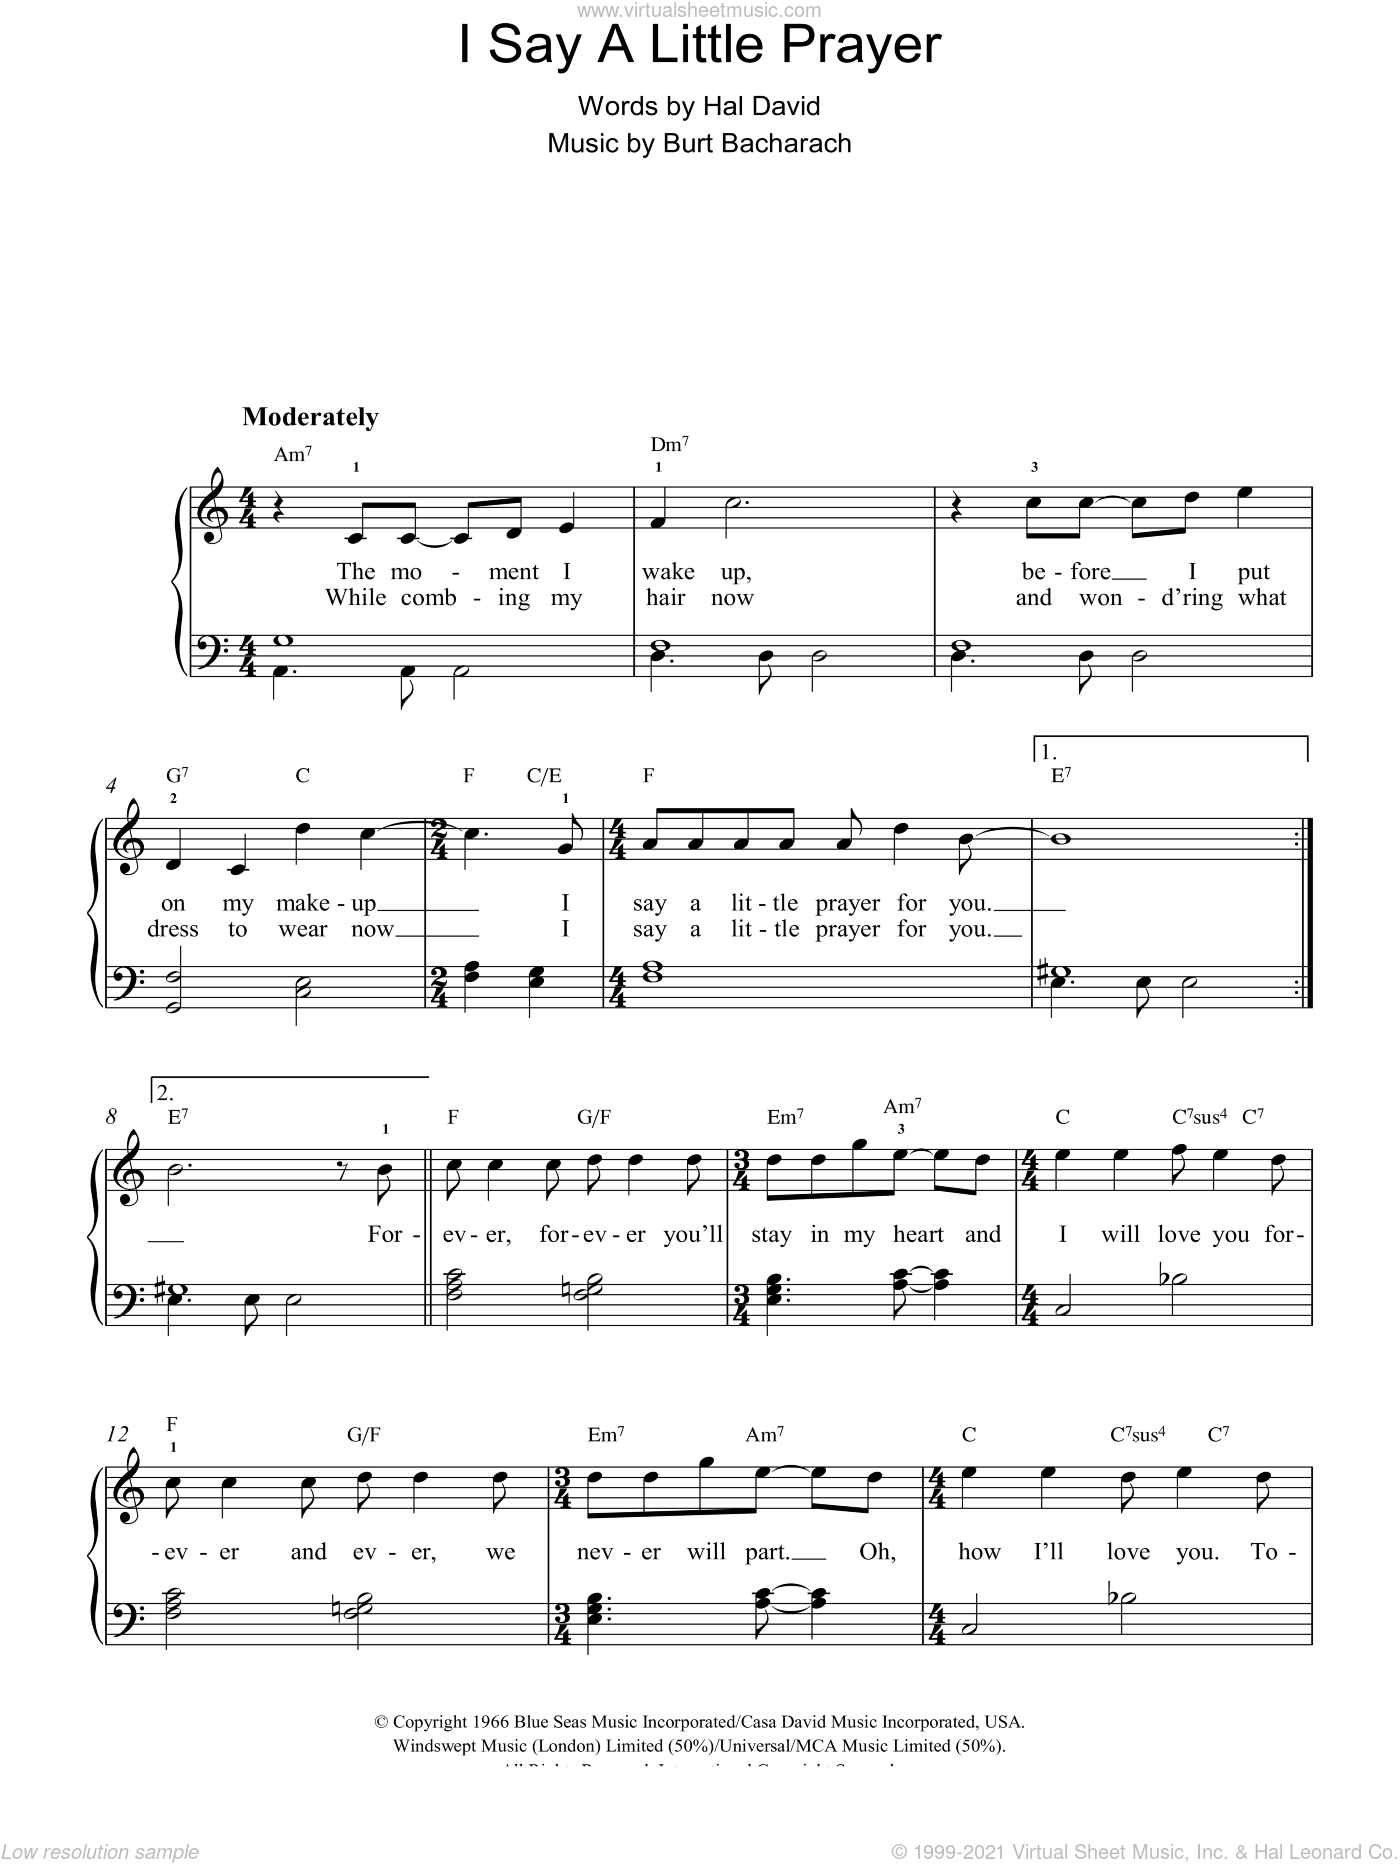 I Say A Little Prayer sheet music for piano solo by Bacharach & David, Burt Bacharach and Hal David. Score Image Preview.